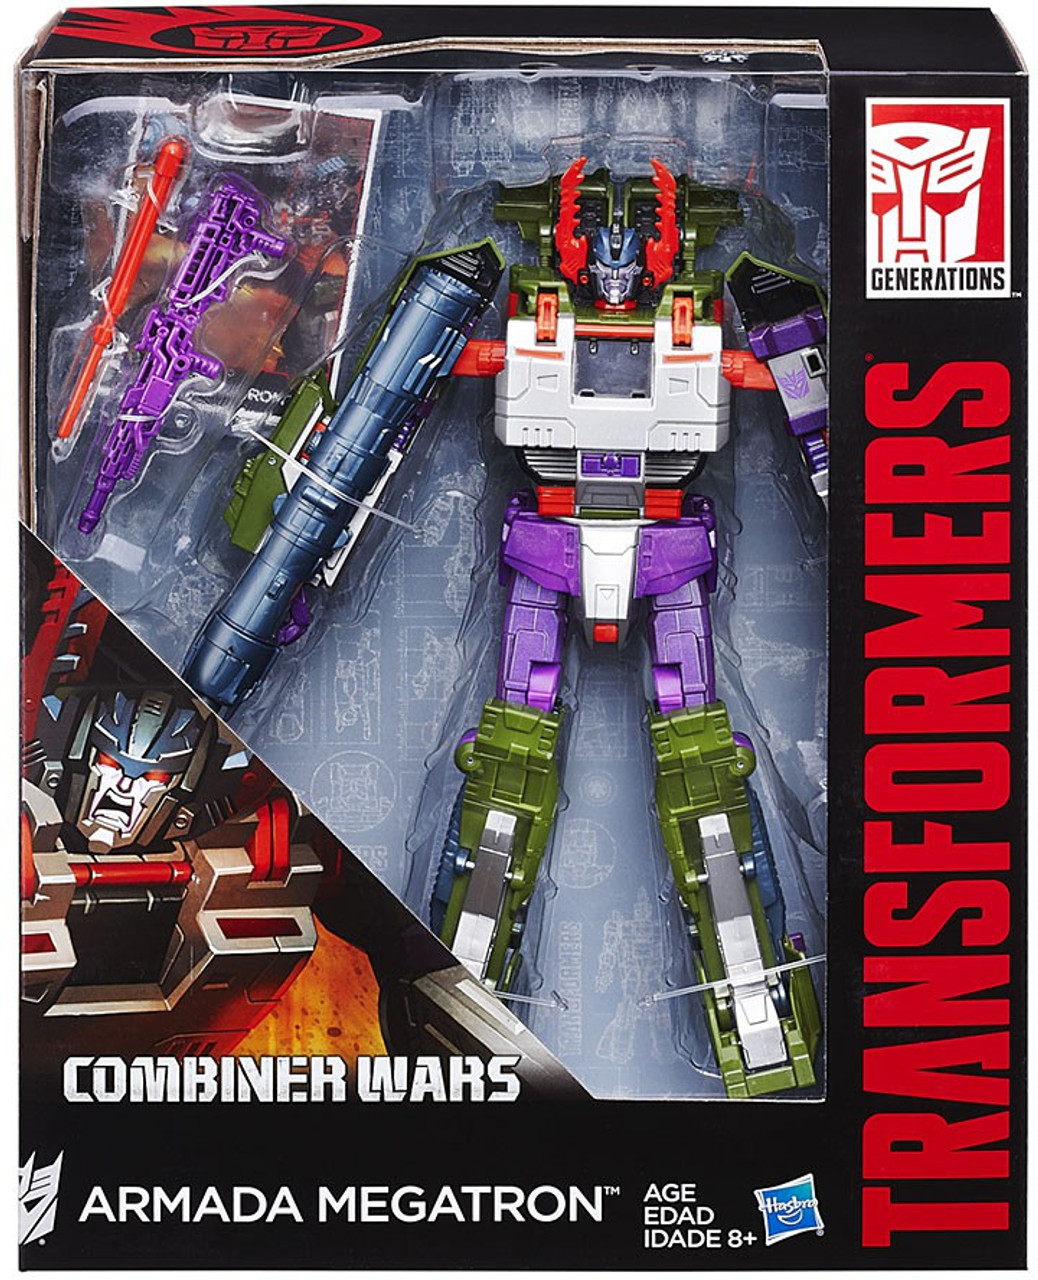 HASBRO TRANSFORMERS COMBINER WARS VOYAGER CLASS OPTIMUS PRIME ACTION FIGURE